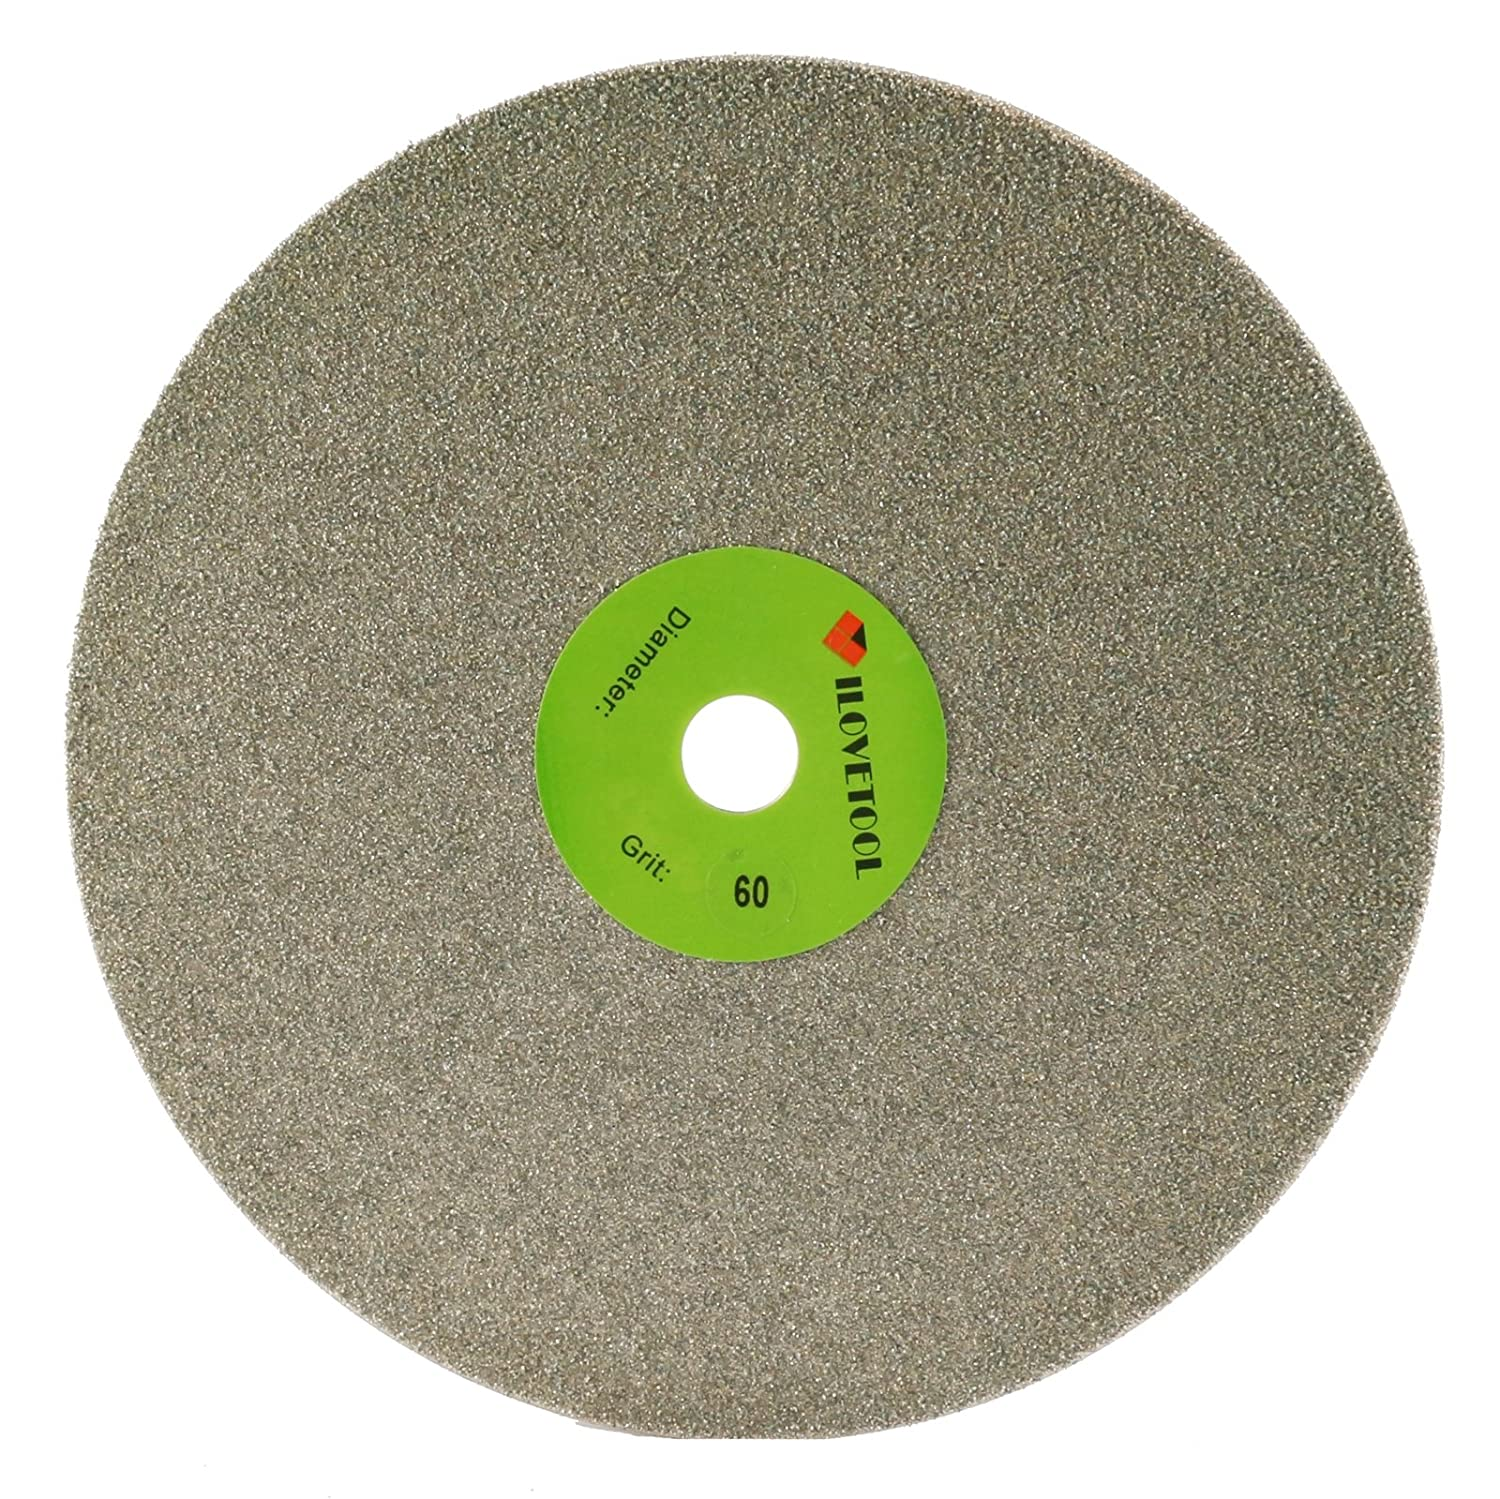 16 inch Diamond Grinding Disc Abrasive Wheels 180 Grit Lapidary Tools Stone